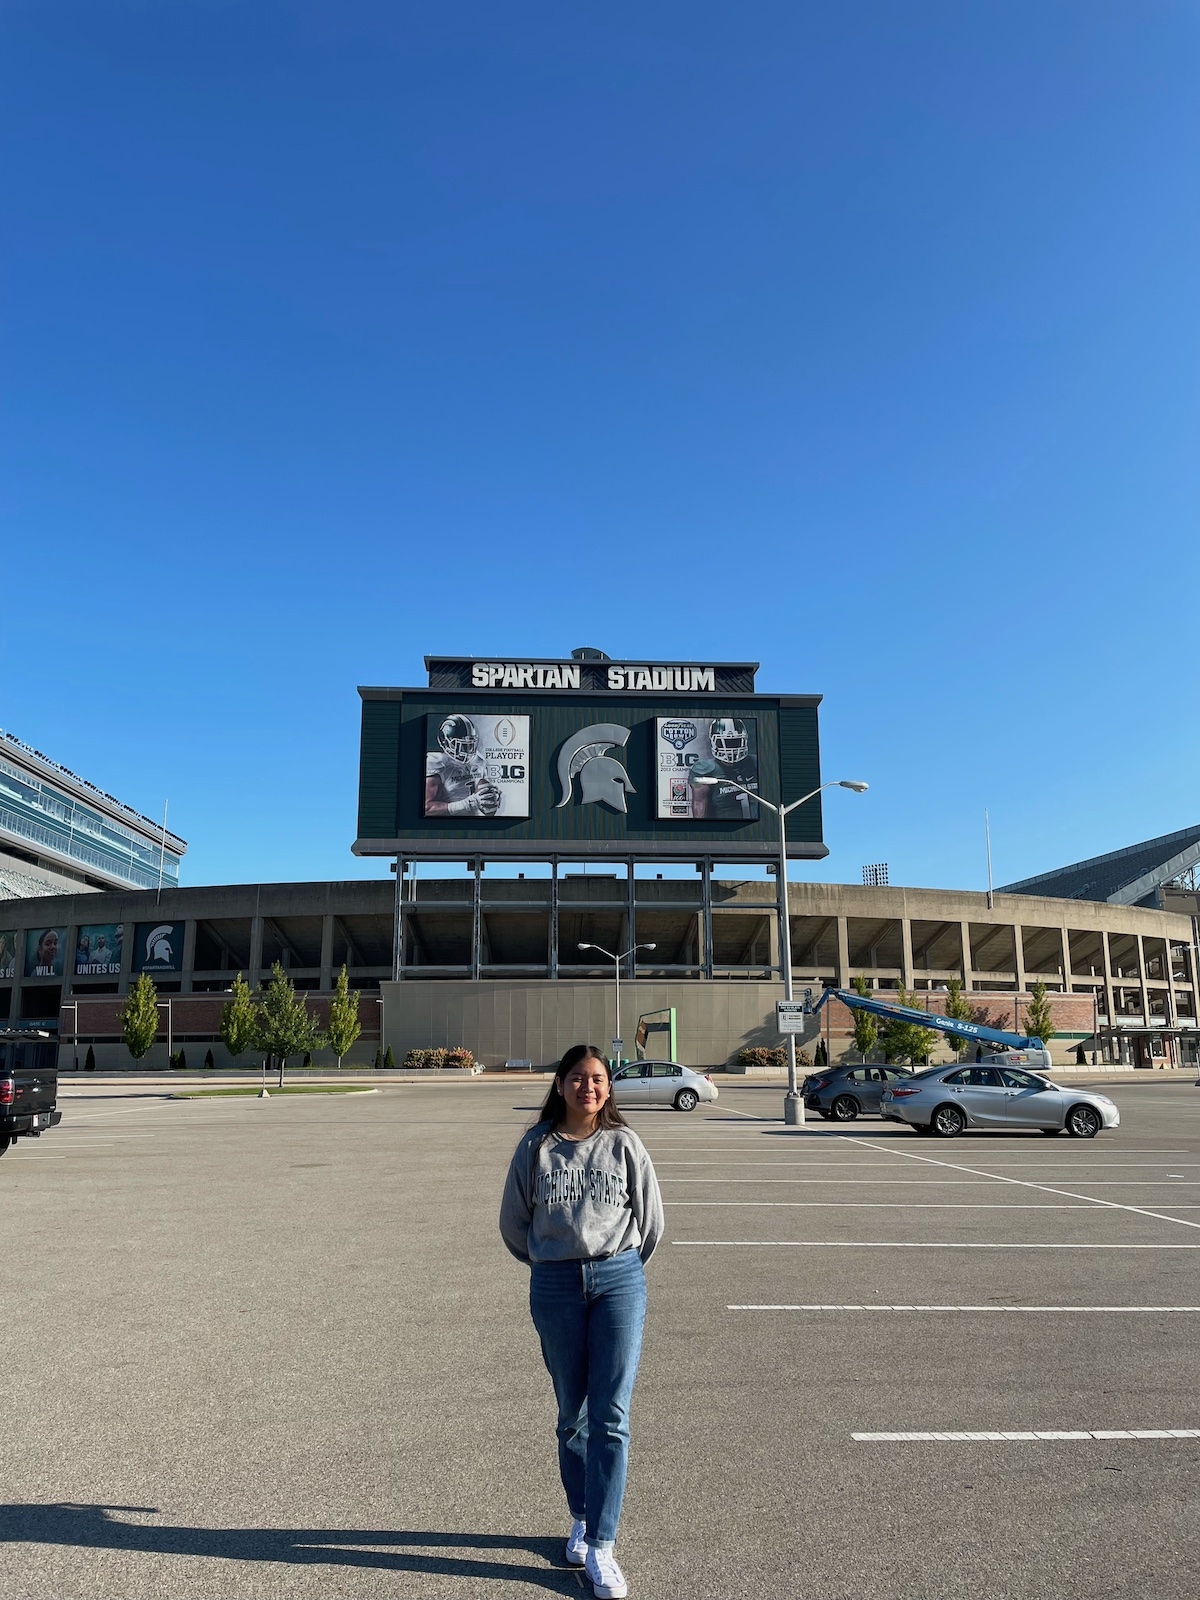 Luz Vazquez Hernandez's first day on campus standing with Spartan Stadium in the background.